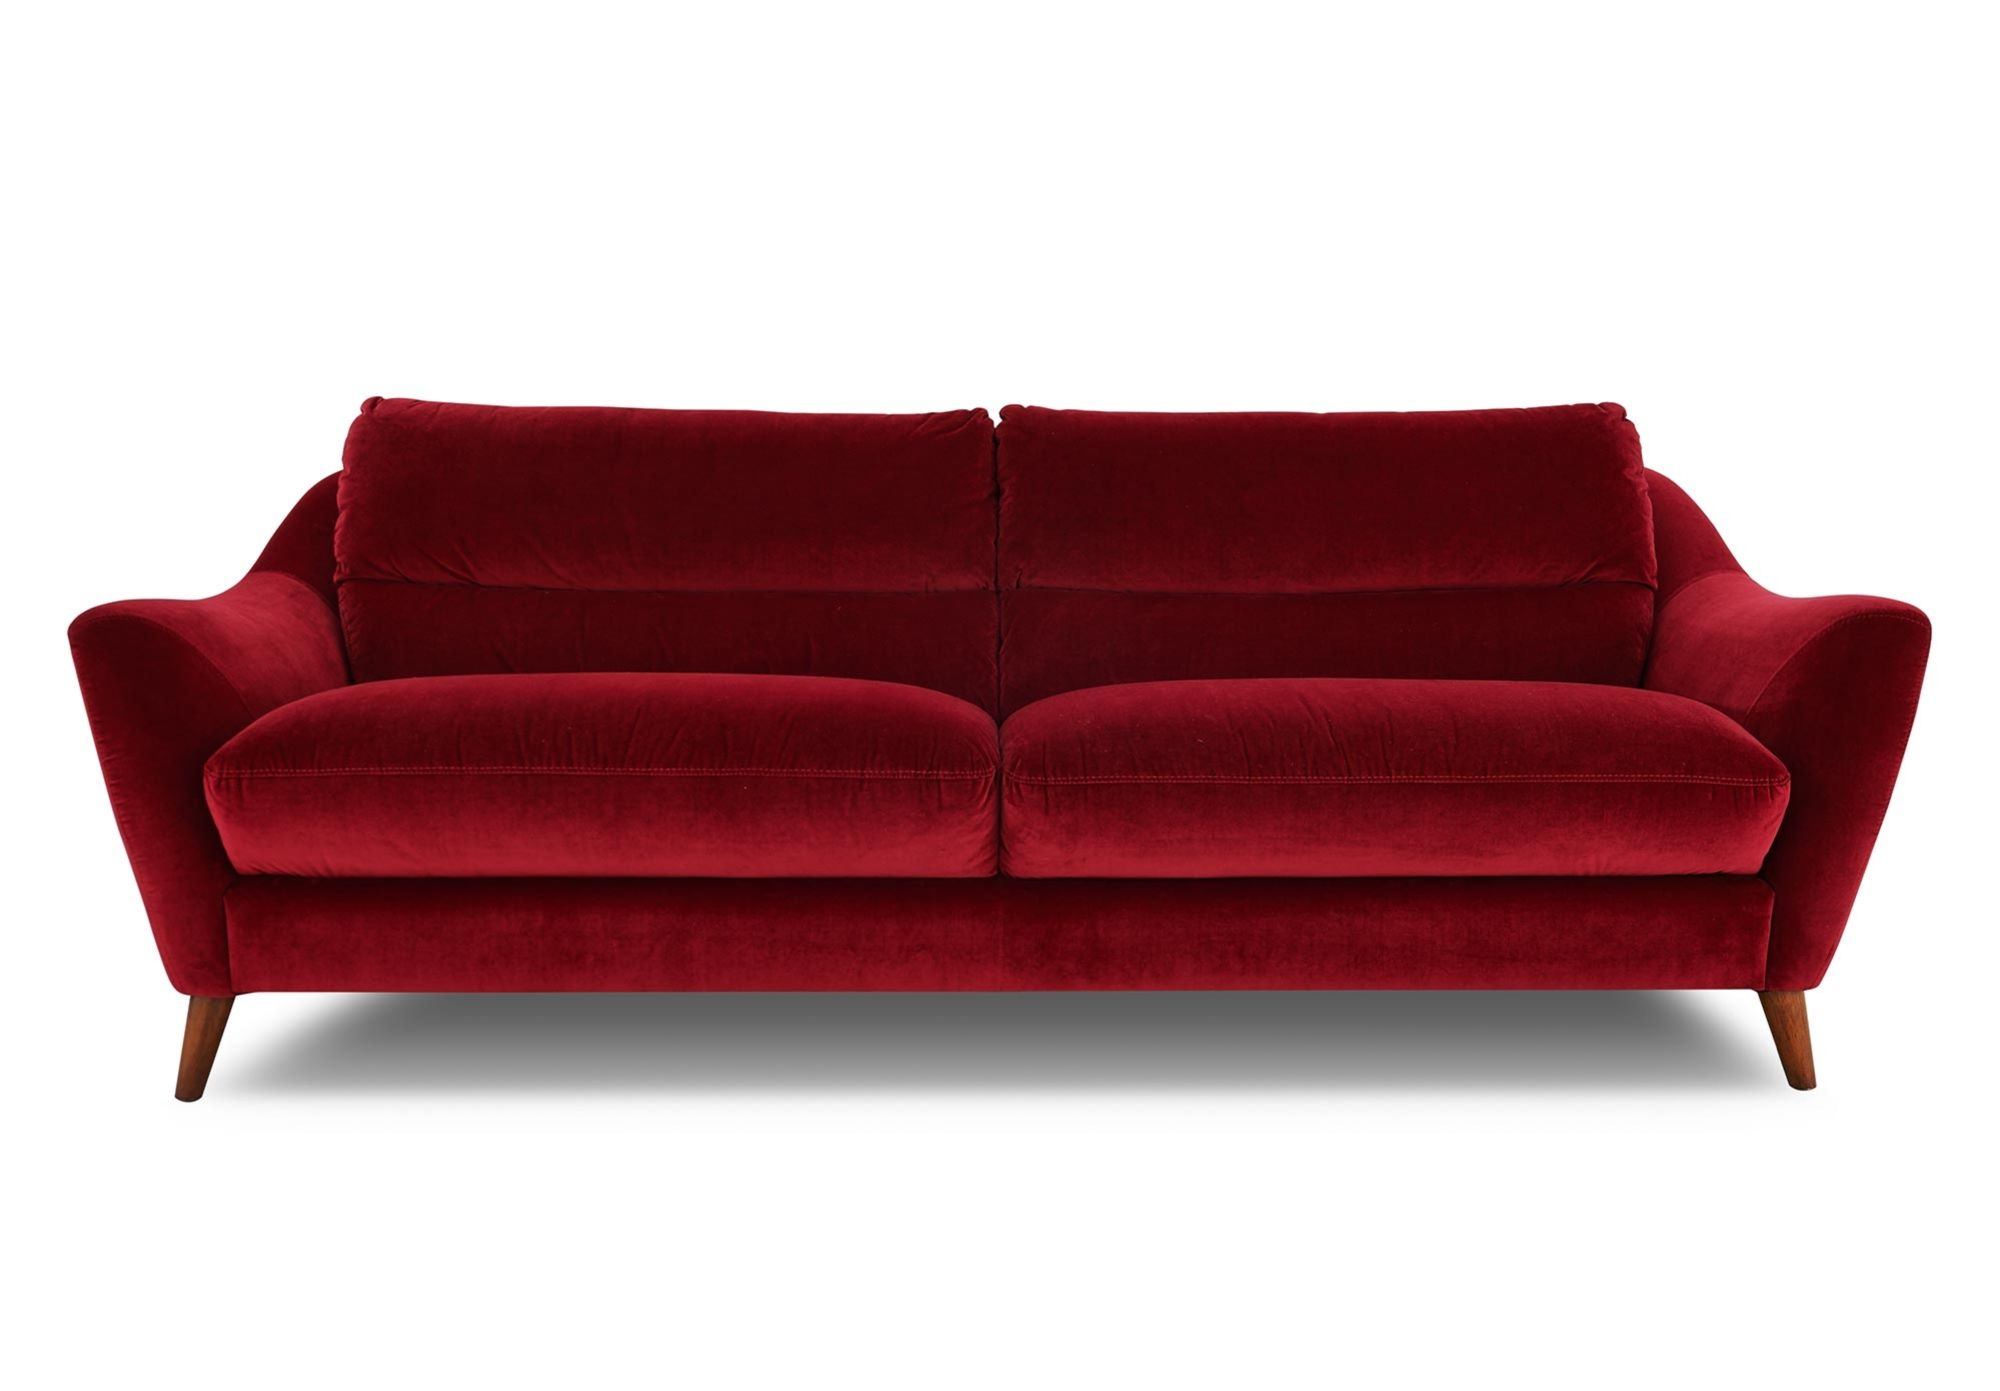 Lila Couch Premier Remy 3 Seater Fabric Sofa At Furniture Village Premier